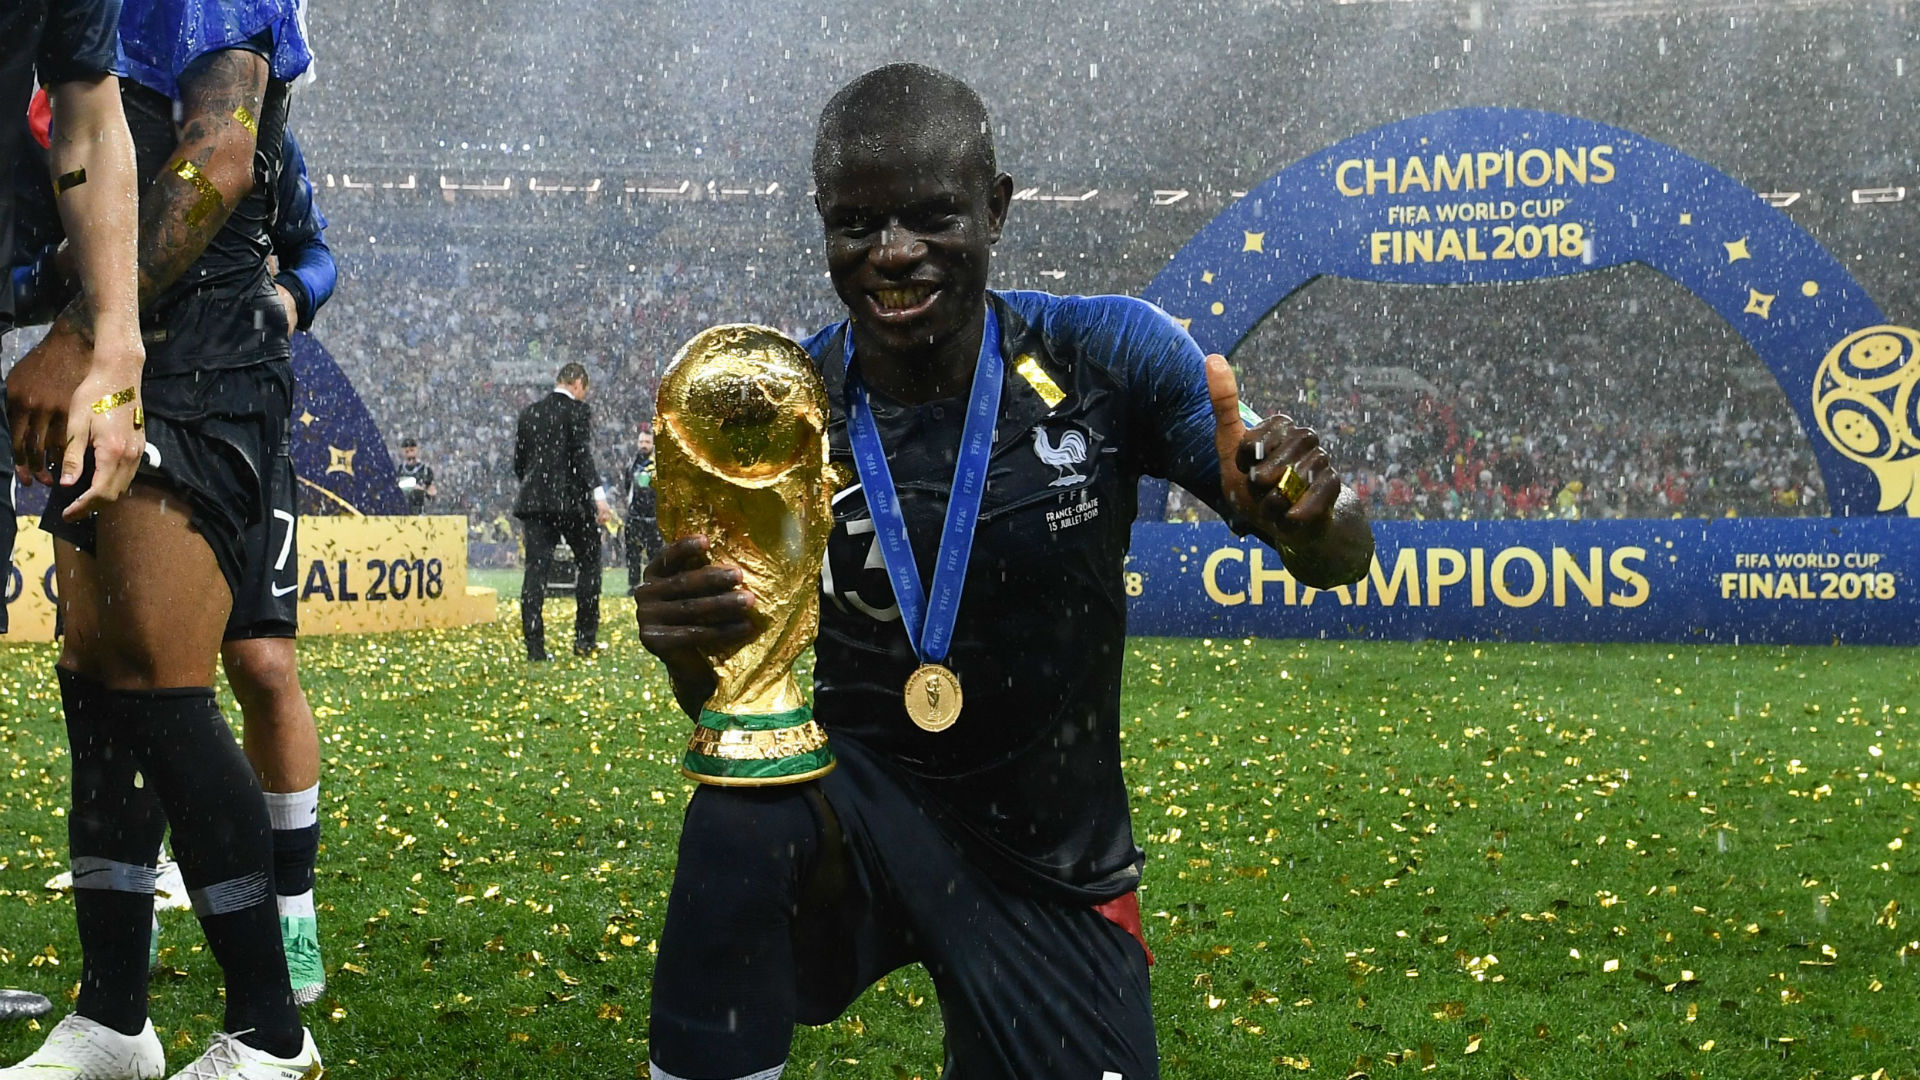 https://images.daznservices.com/di/library/GOAL/36/59/ngolo-kante-france-world-cup-trophy_xrm21u2muol18ej1a8m066sv.jpg?t=1113522685&quality=100